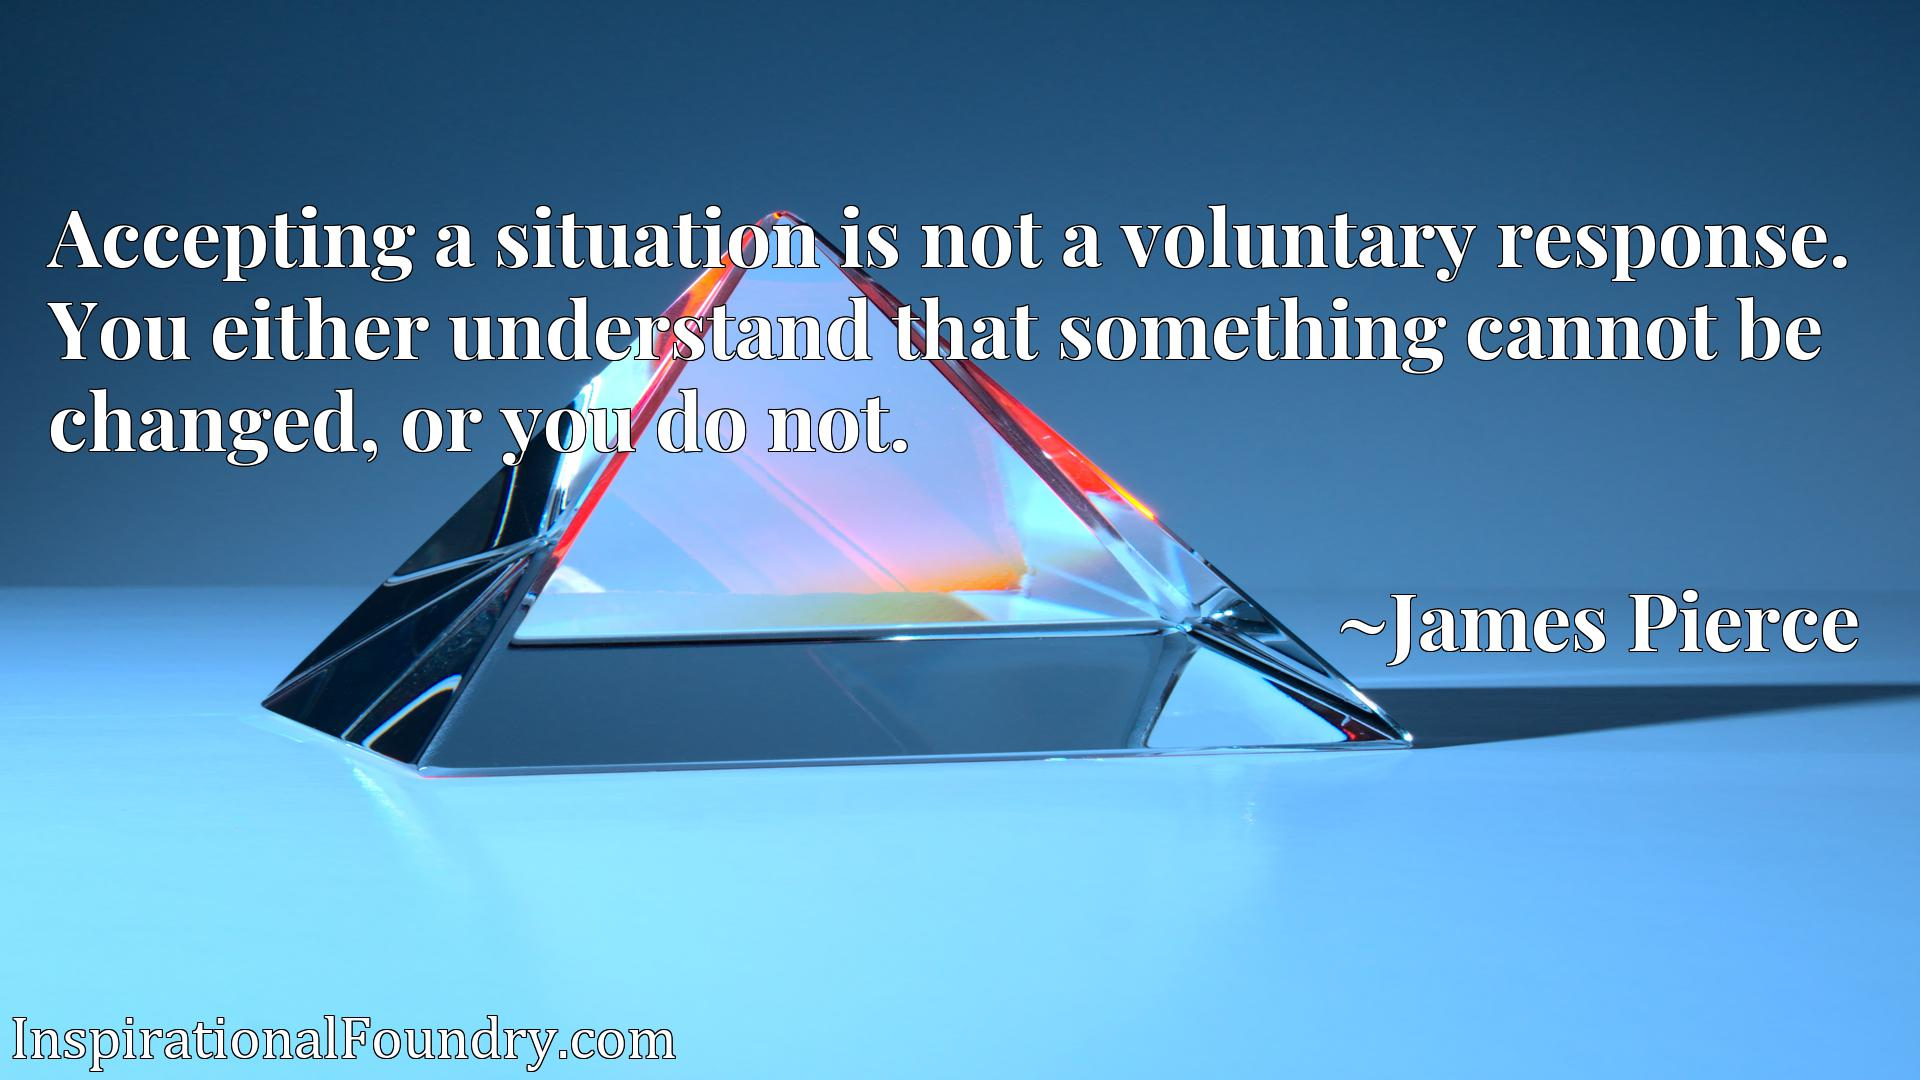 Accepting a situation is not a voluntary response. You either understand that something cannot be changed, or you do not.